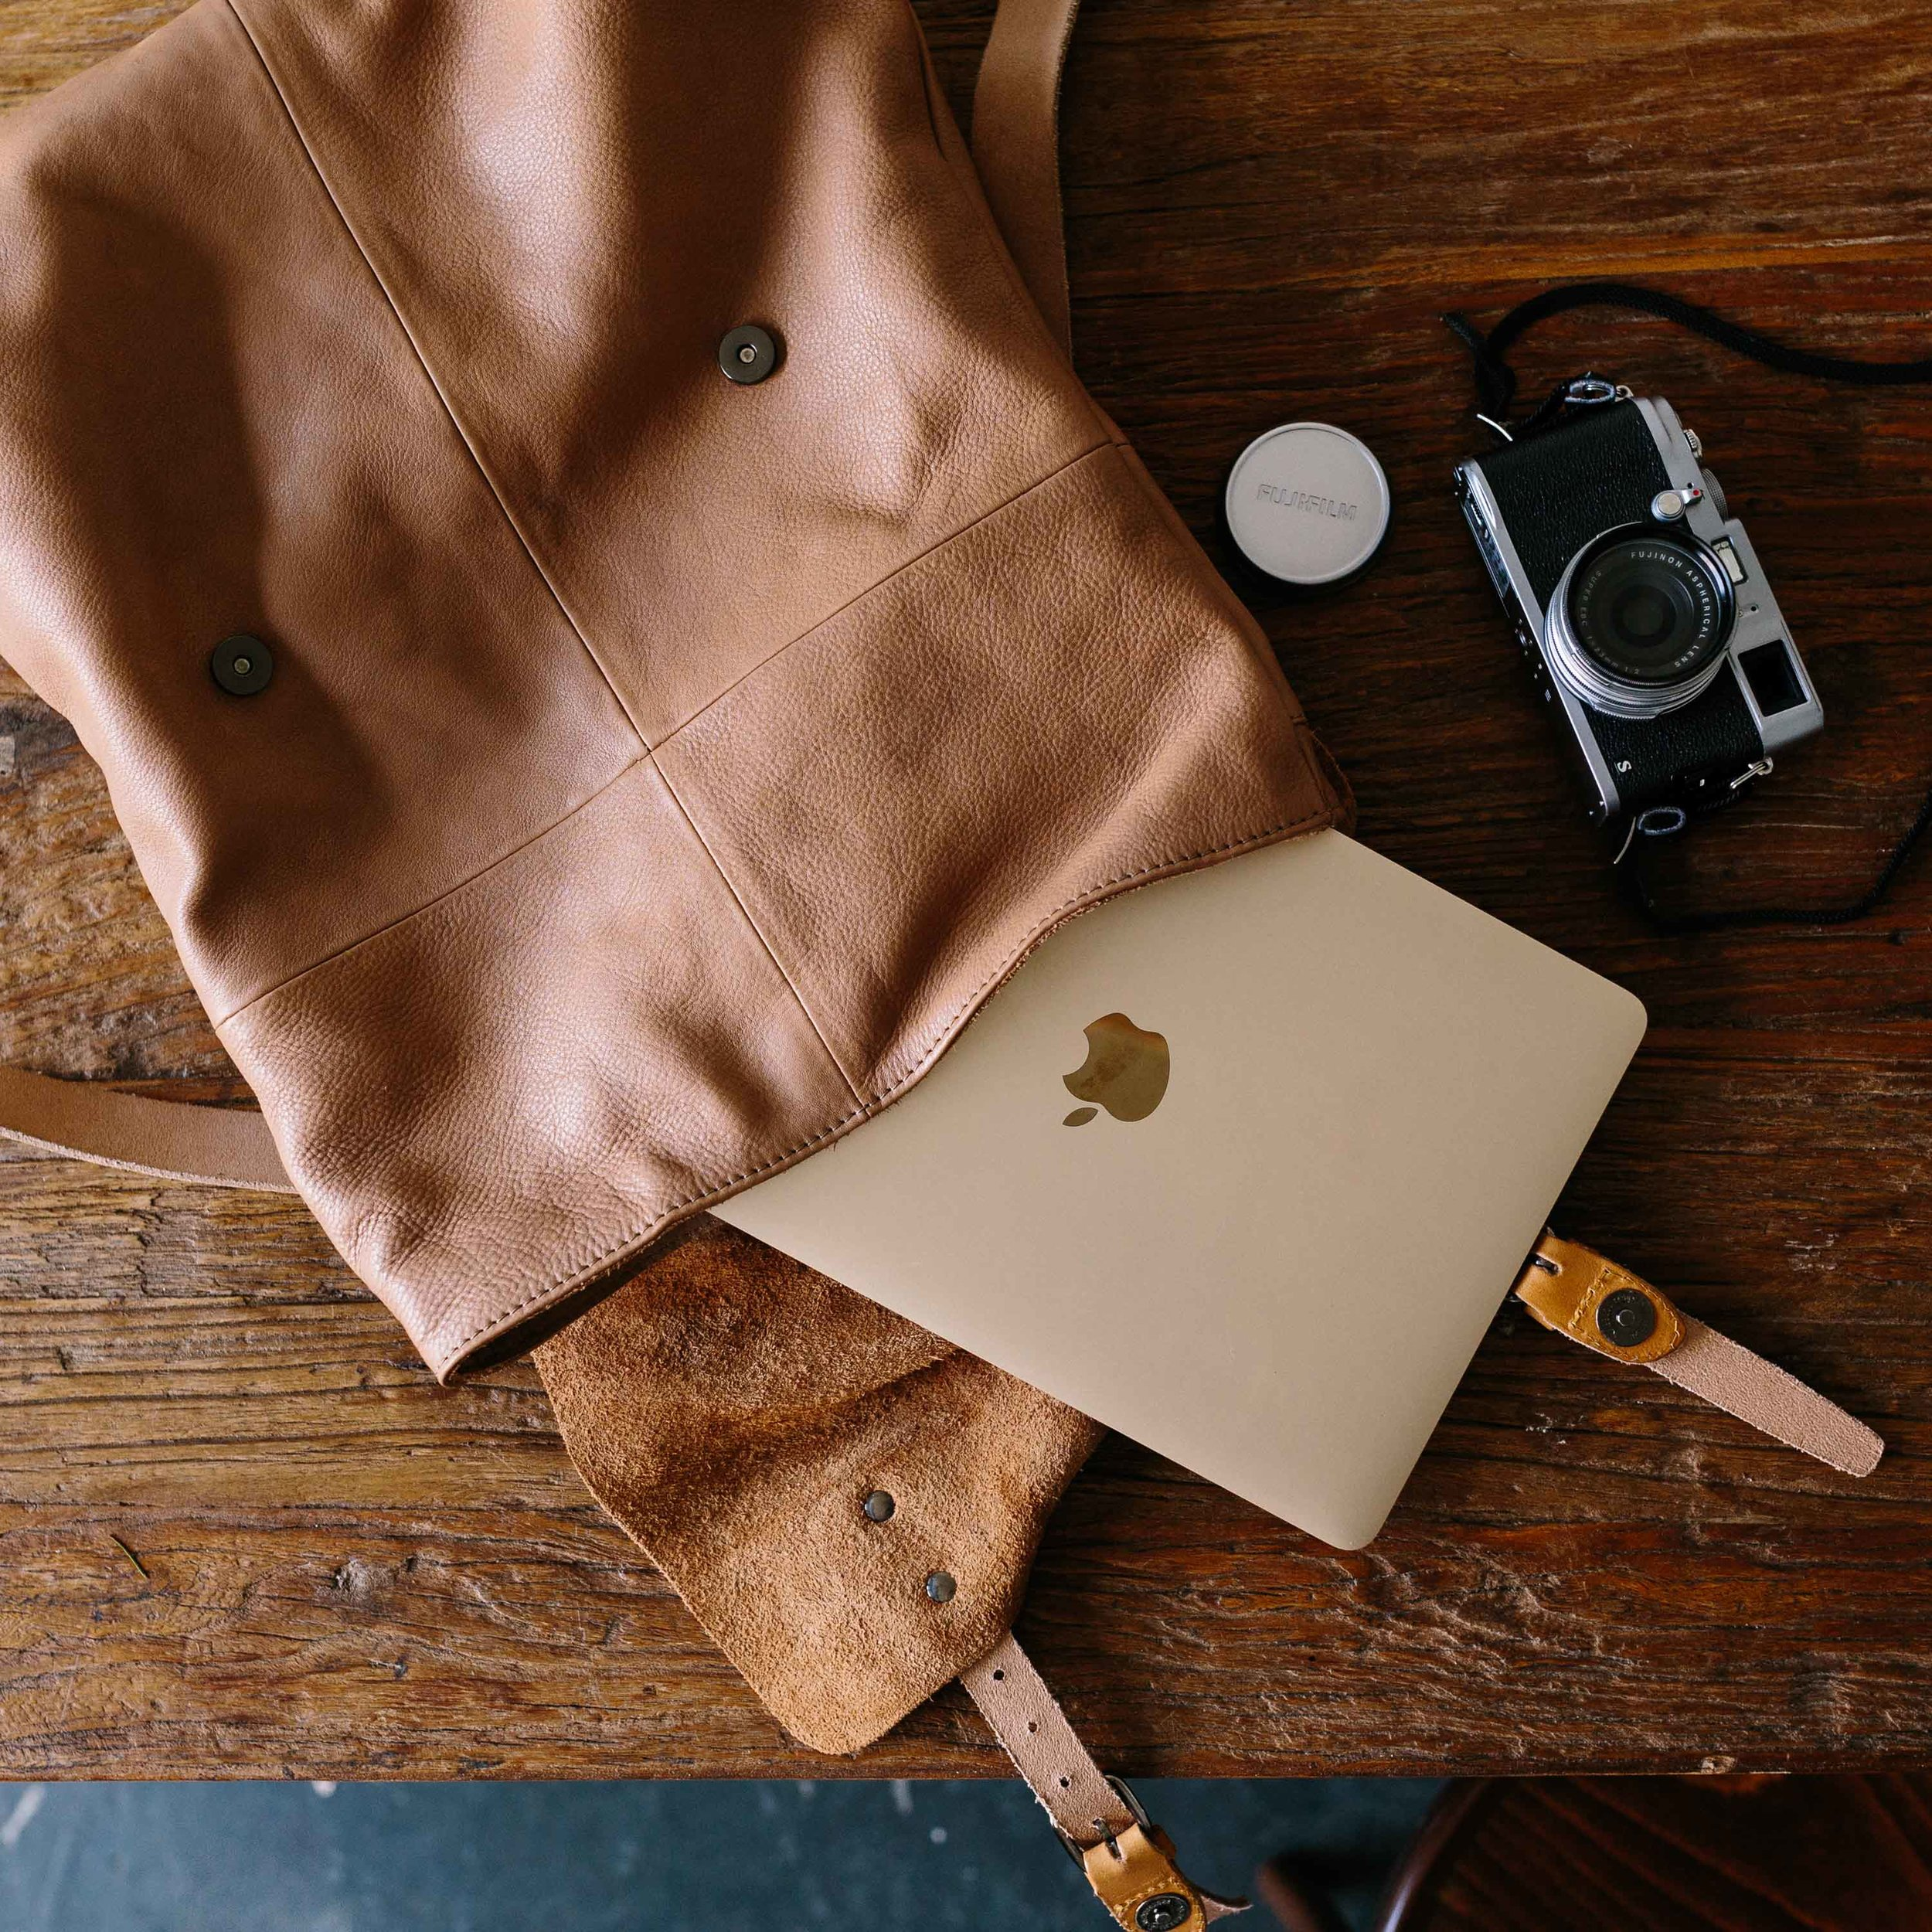 Huide leather backpack from Elk Accessories, photo by Marnie Hawson